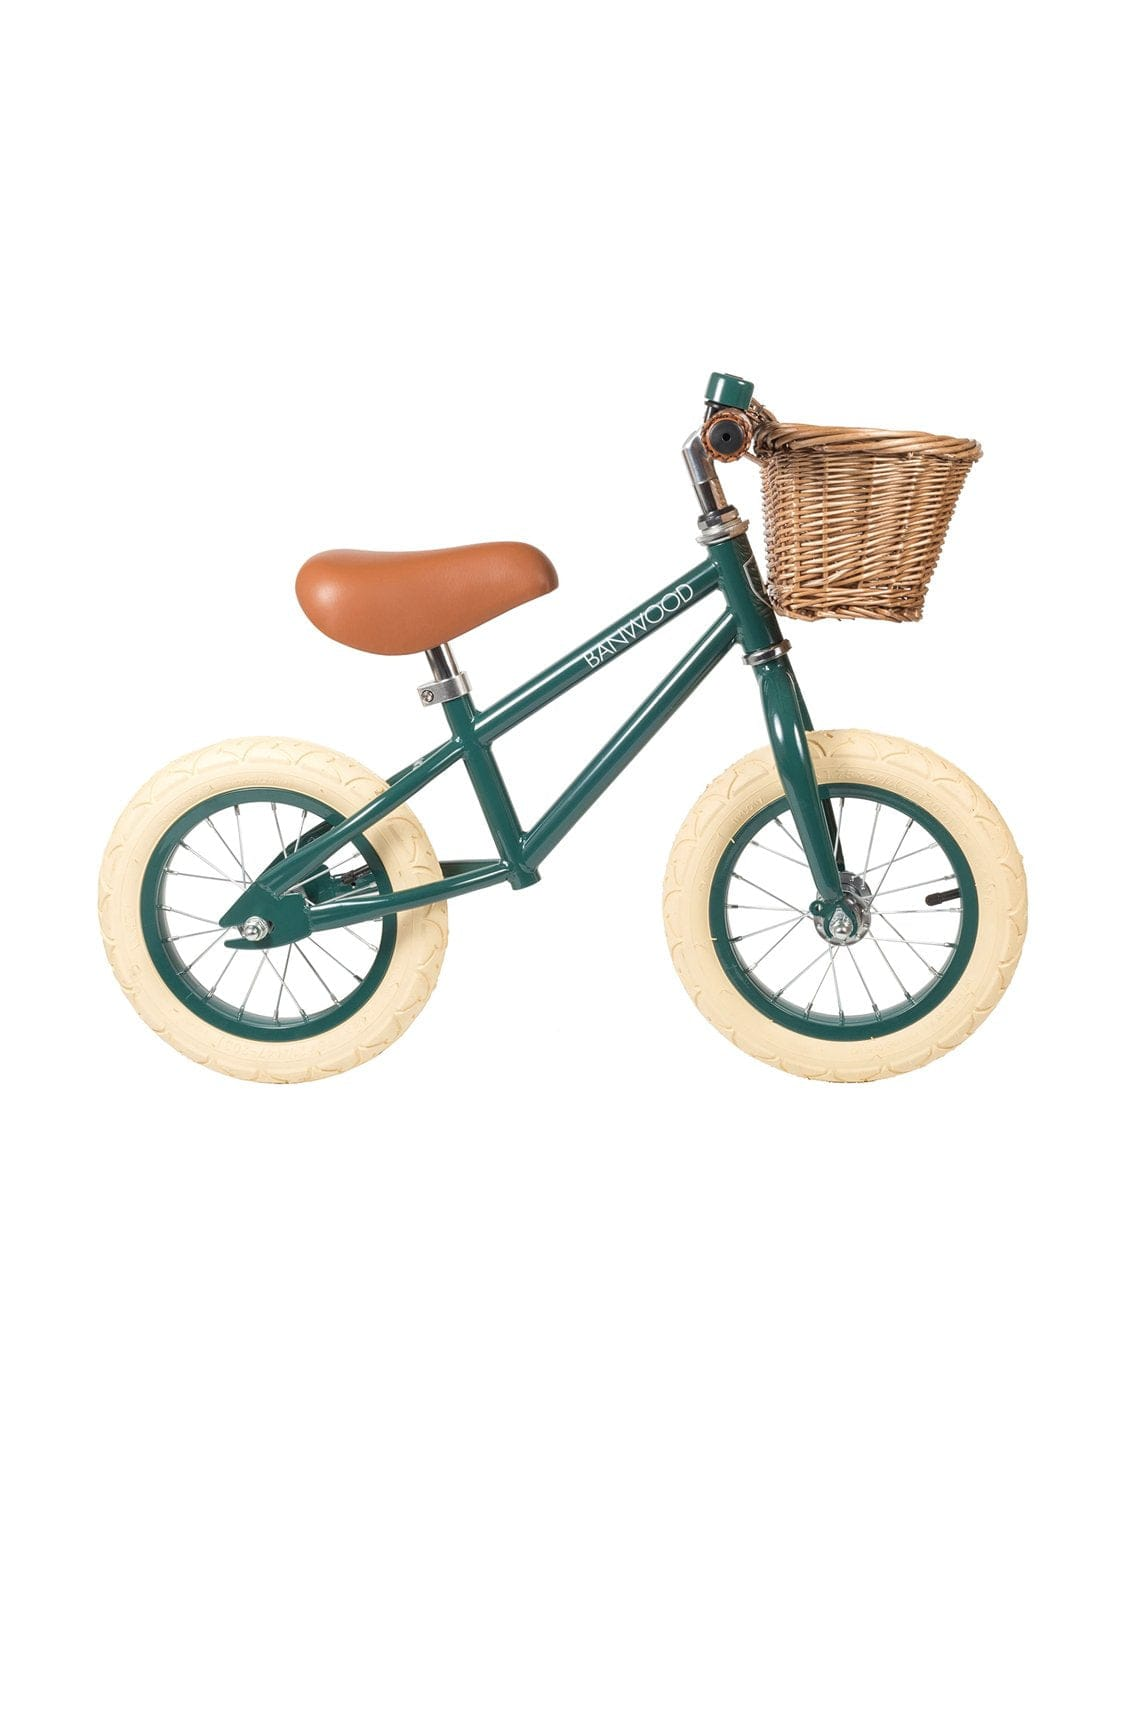 BANWOOD FIRST GO BALANCE BIKE, DARK GREEN - Hello Little Birdie